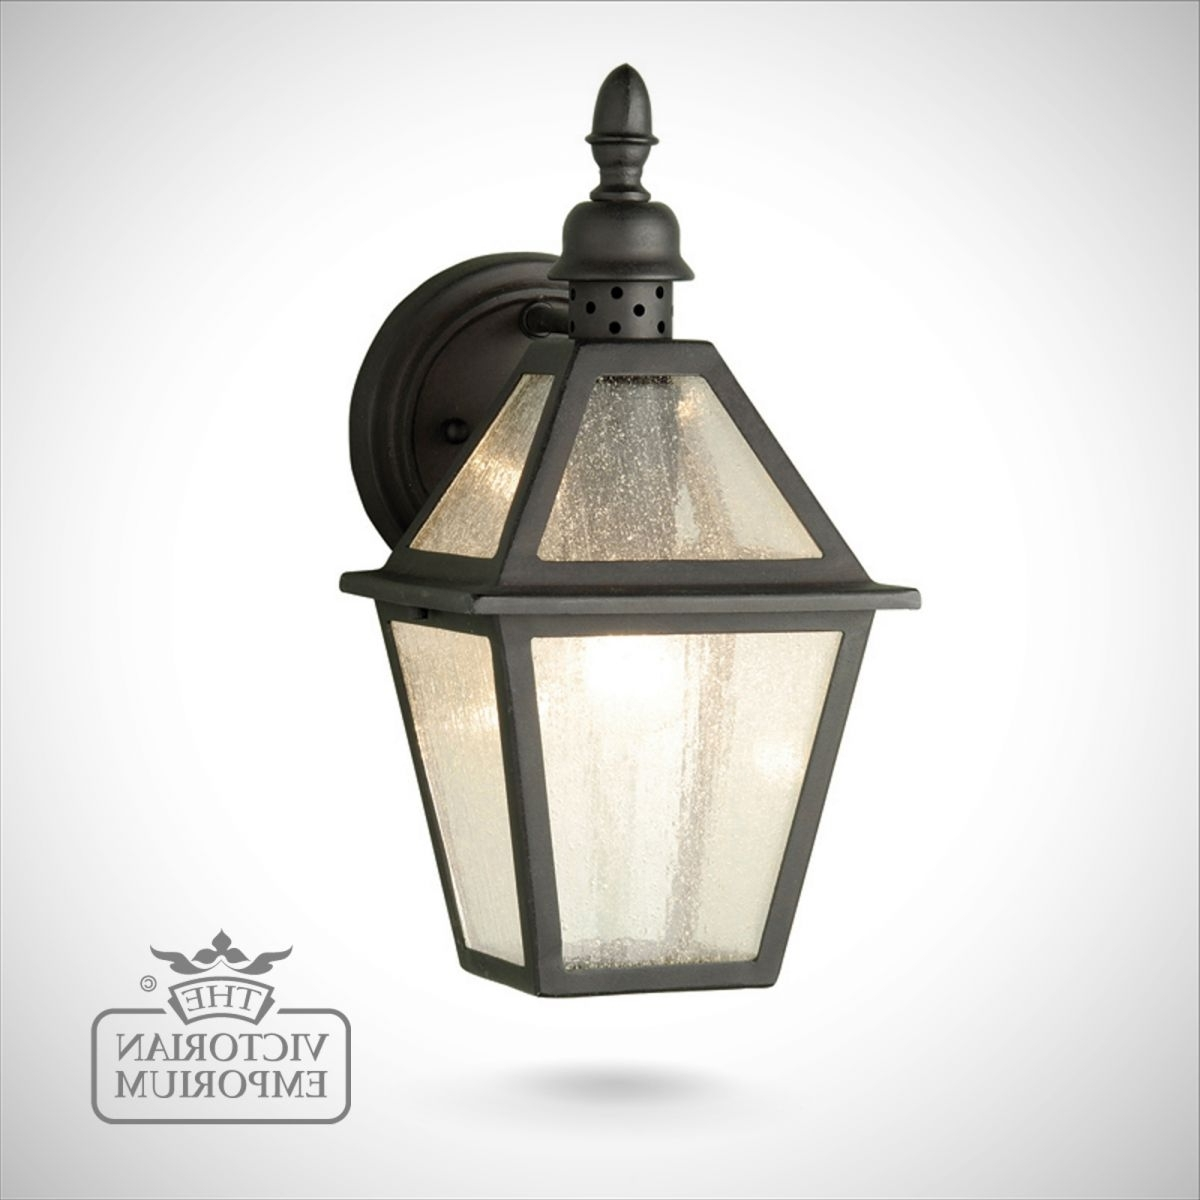 Newest Victorian Outdoor Wall Lighting With Regard To Victorian Outdoor Wall Lighting – Outdoor Designs (View 7 of 20)